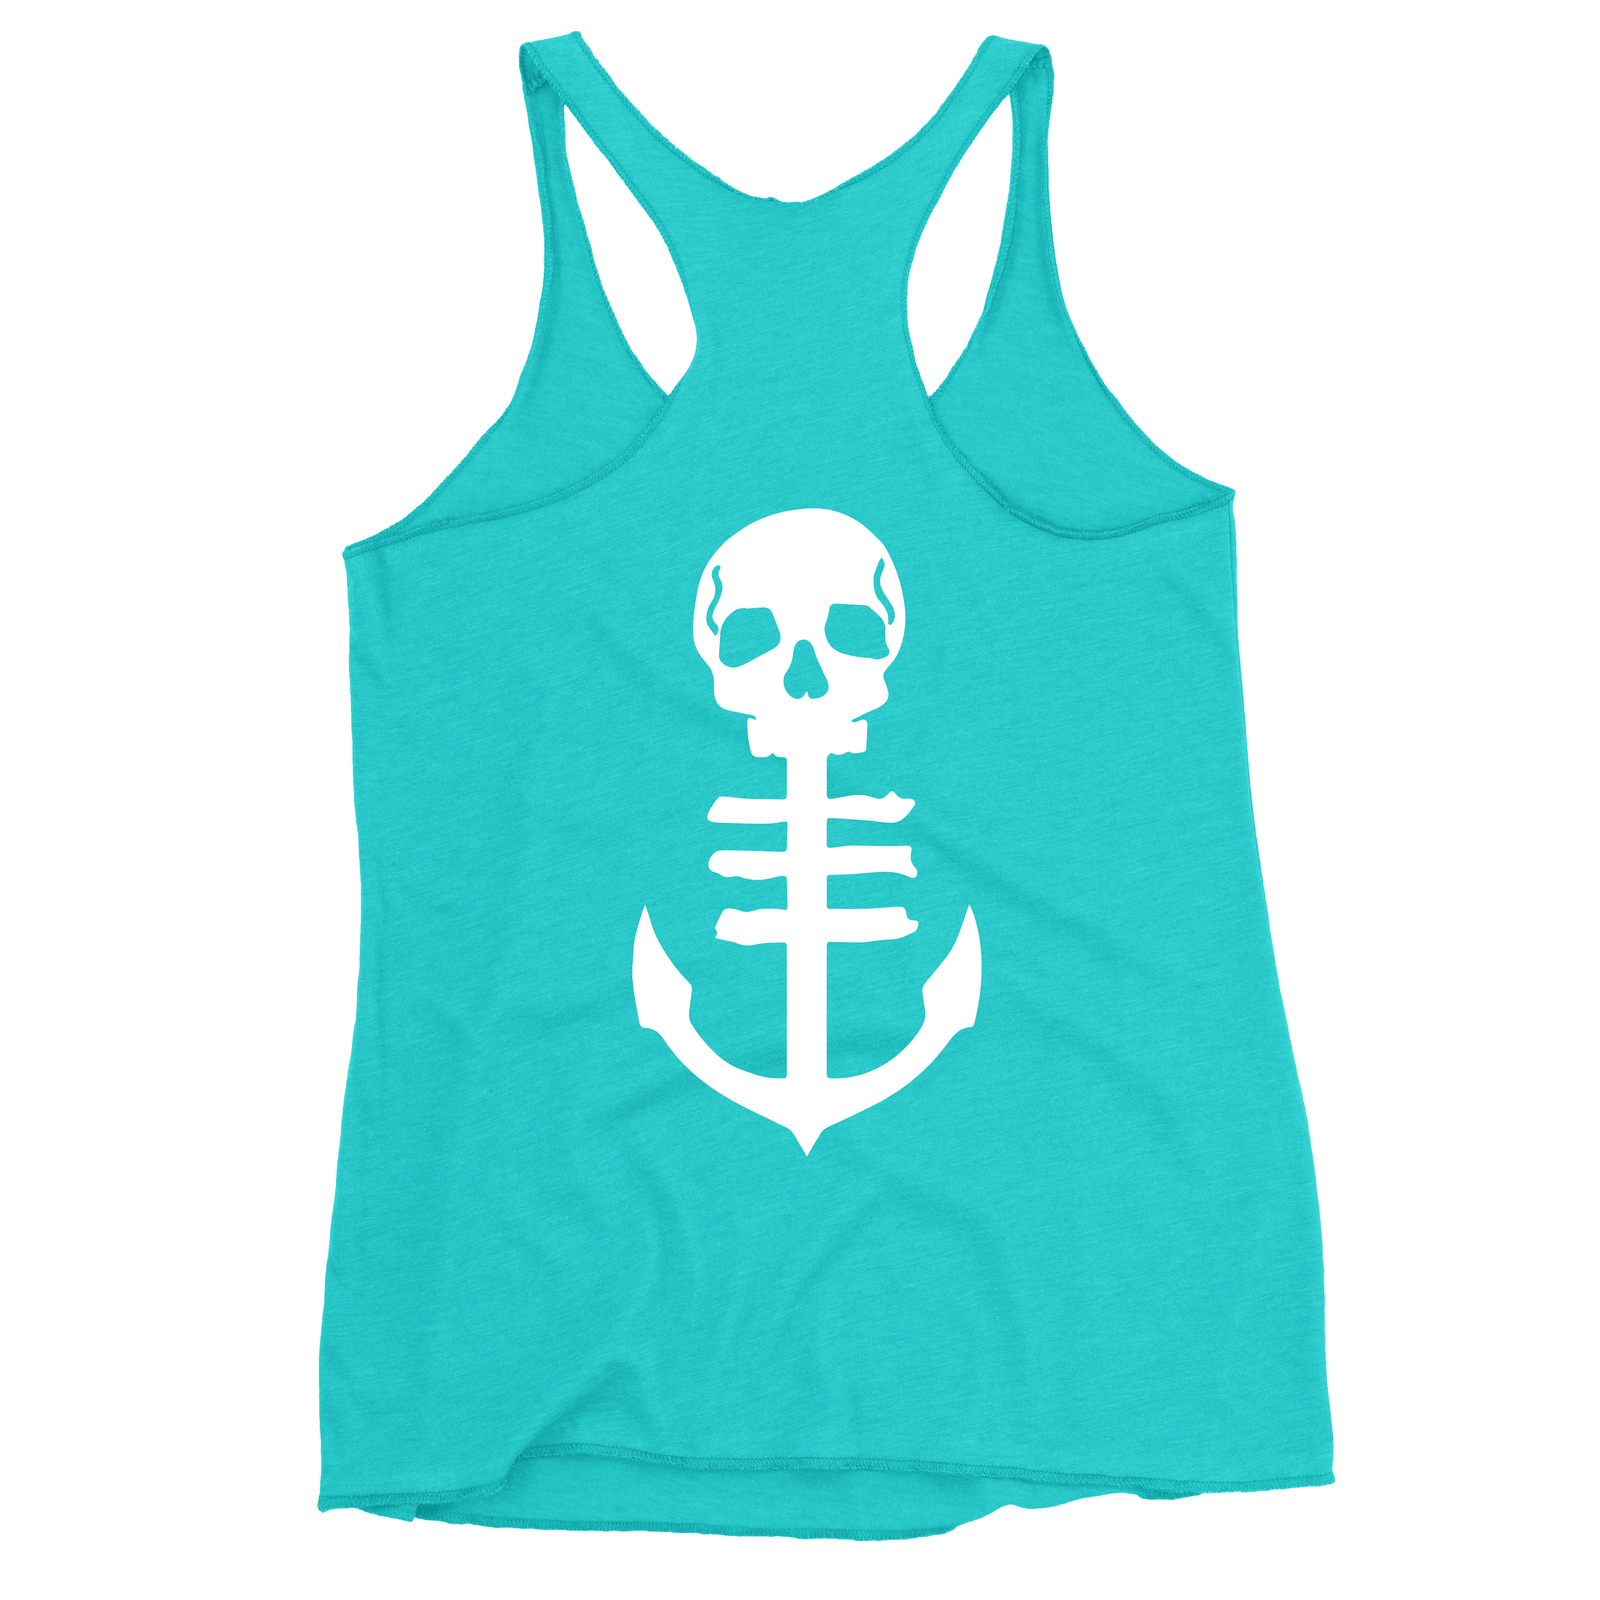 The Iconic Racerback - Ocean Blue